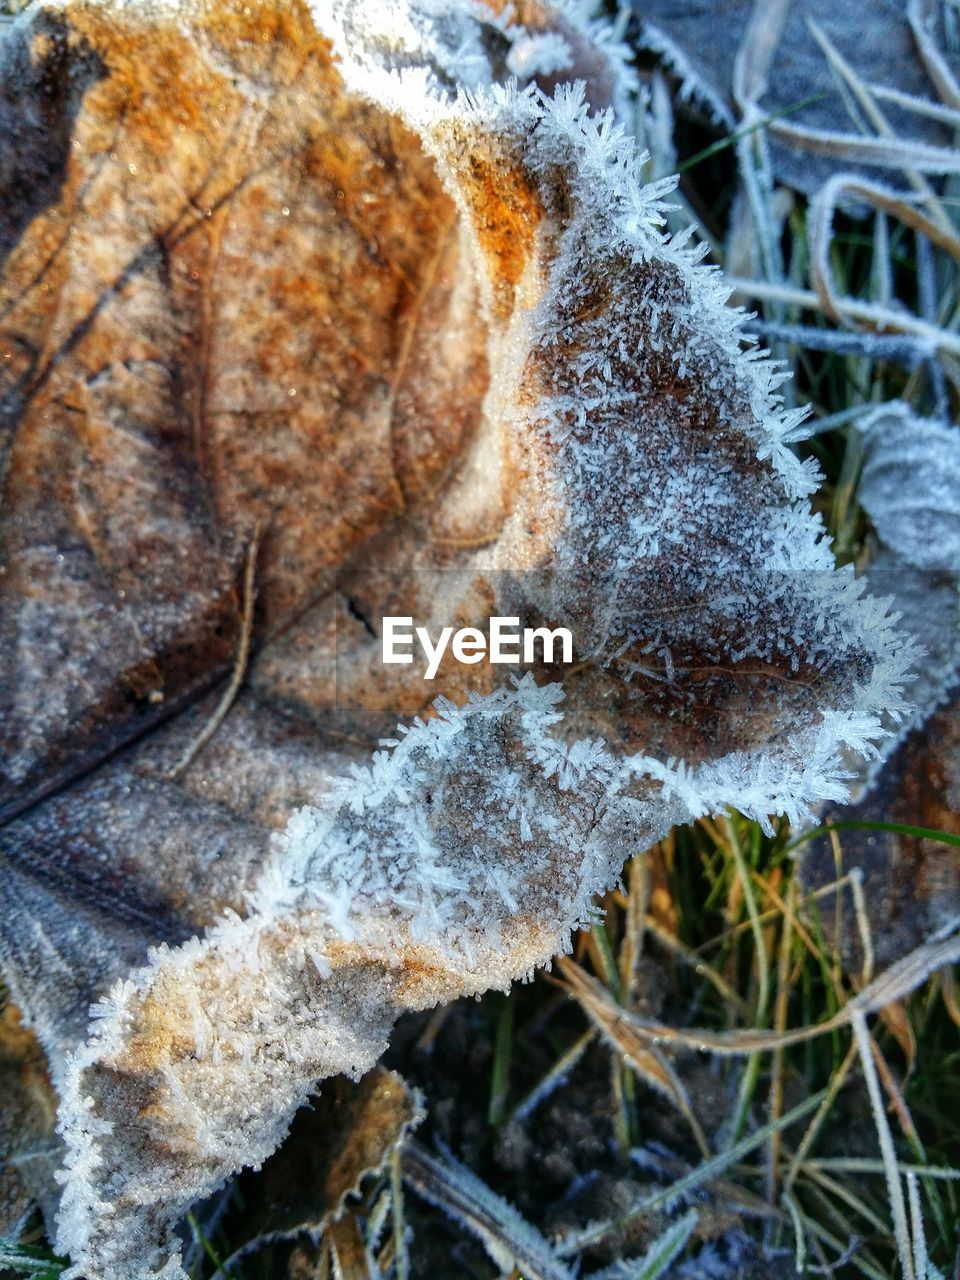 cold temperature, winter, snow, nature, close-up, weather, outdoors, day, focus on foreground, frozen, frost, leaf, no people, forest, fungus, plant, beauty in nature, fragility